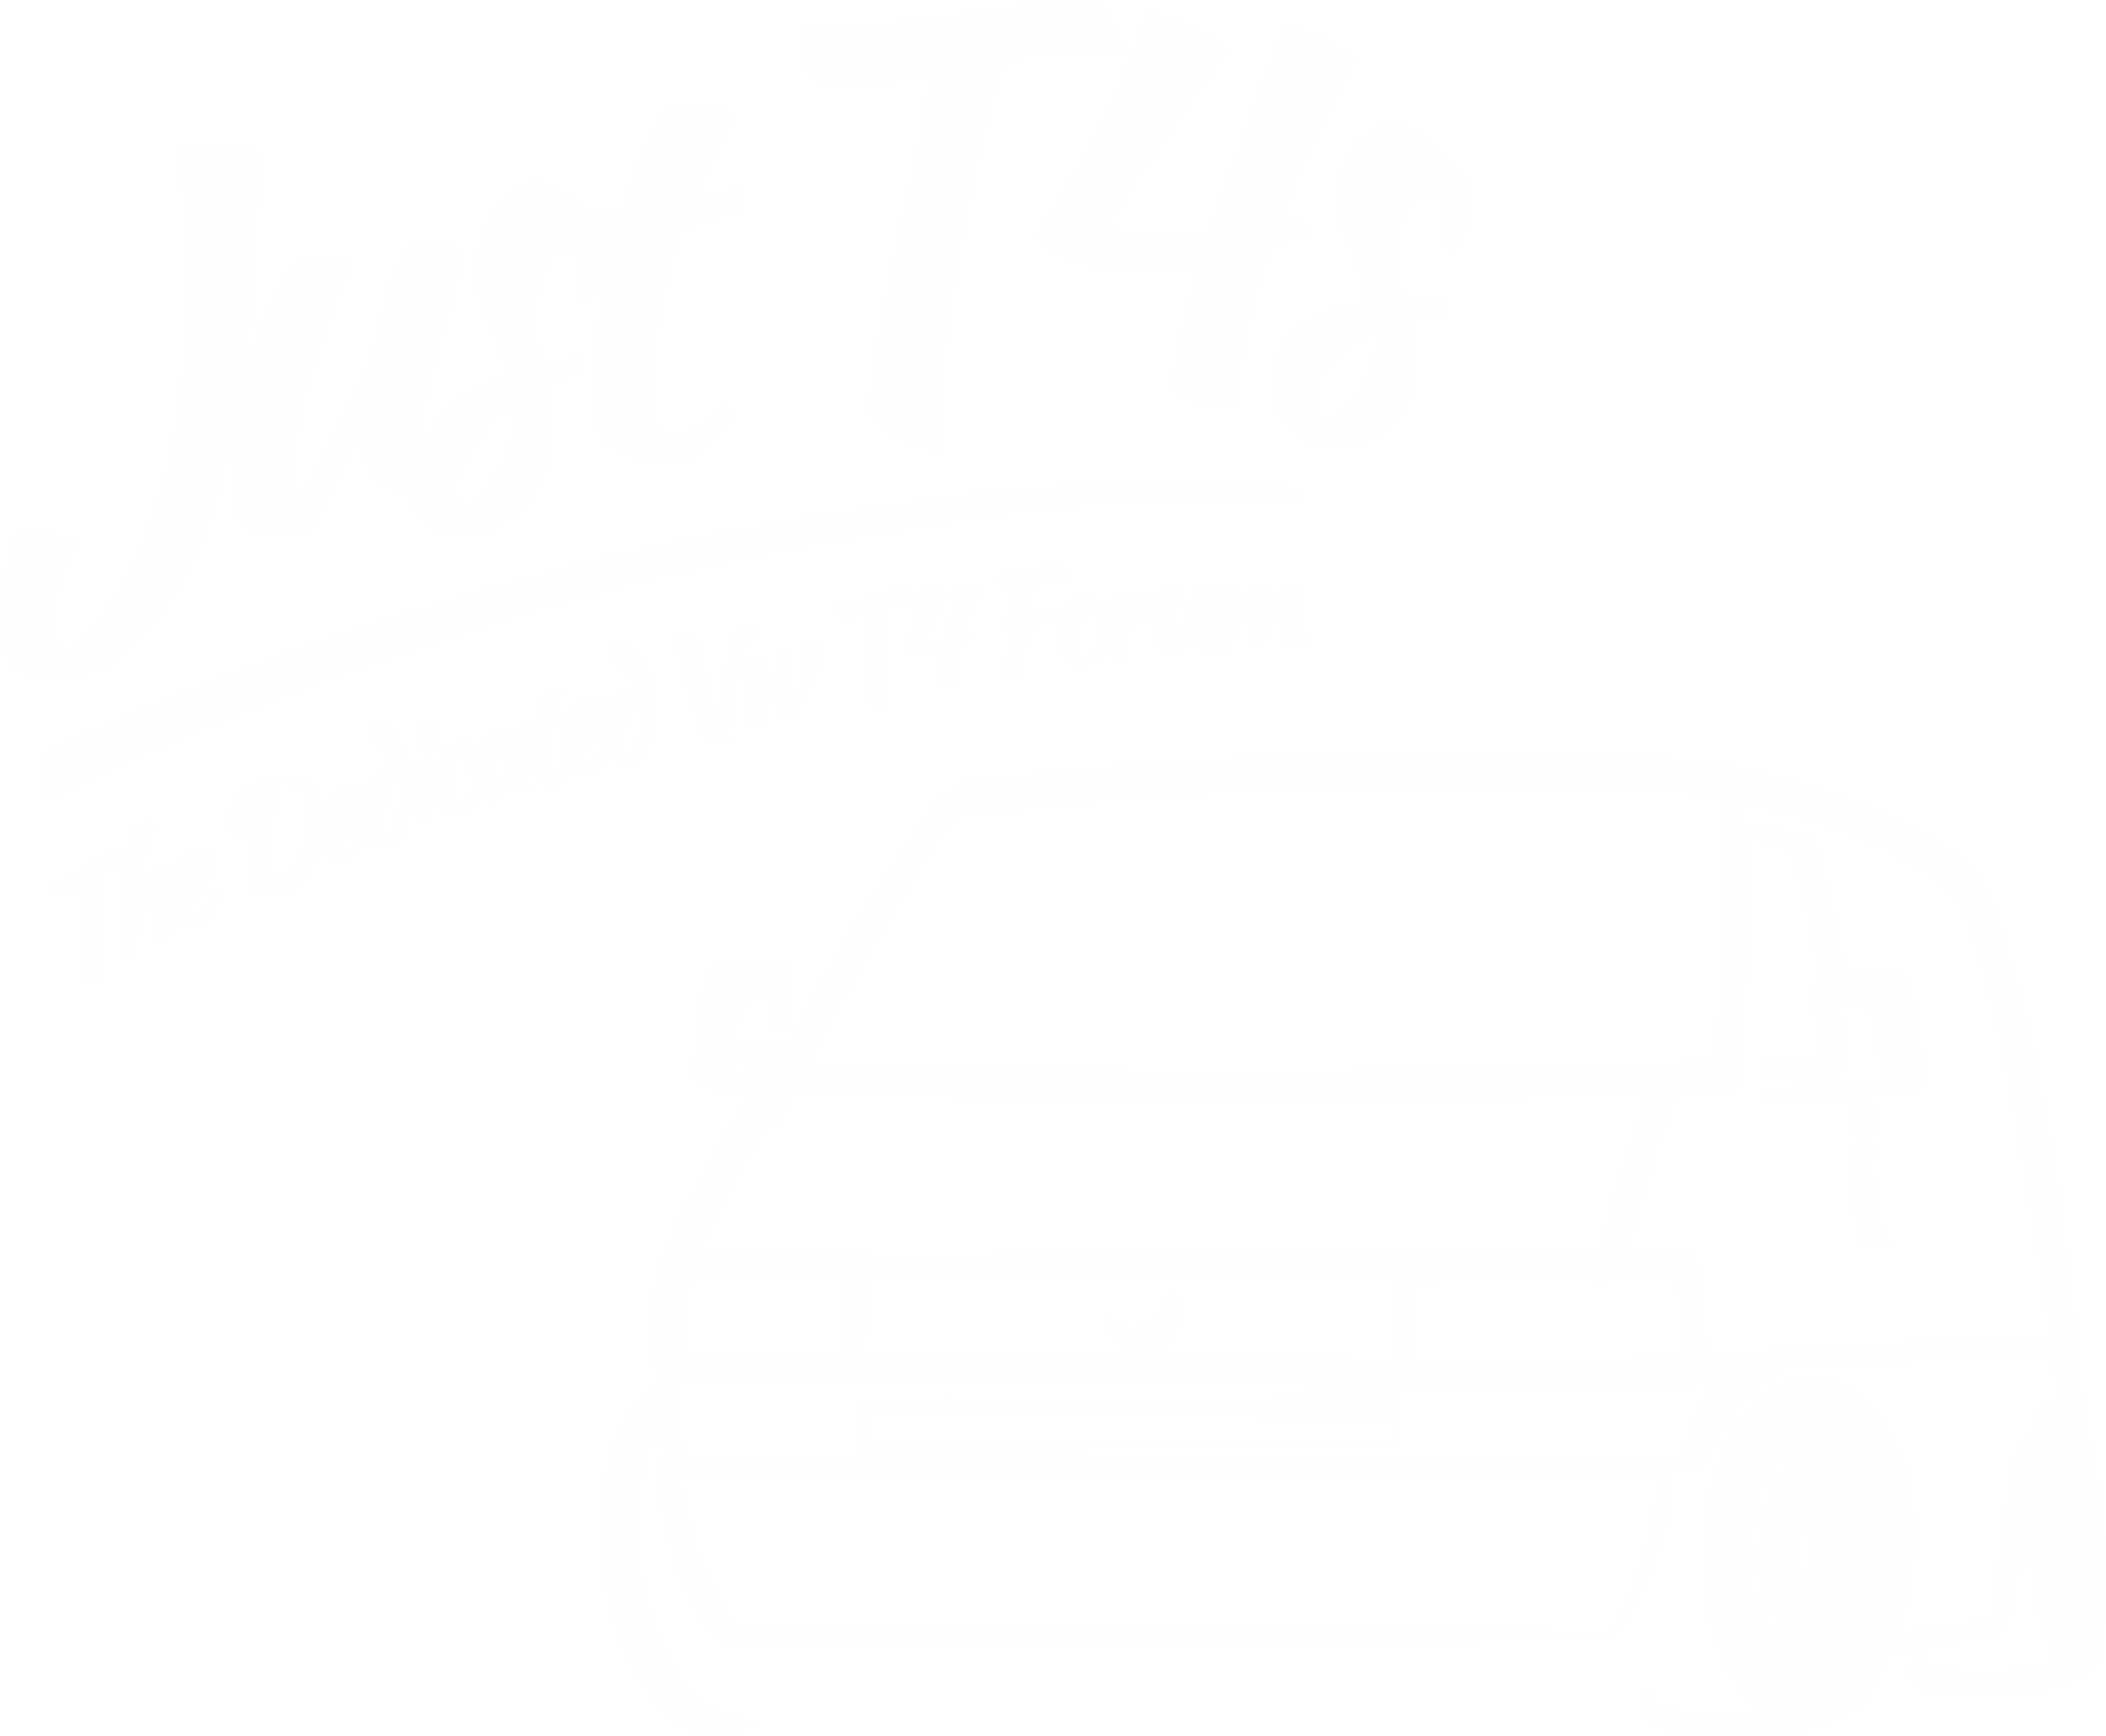 Just T4s